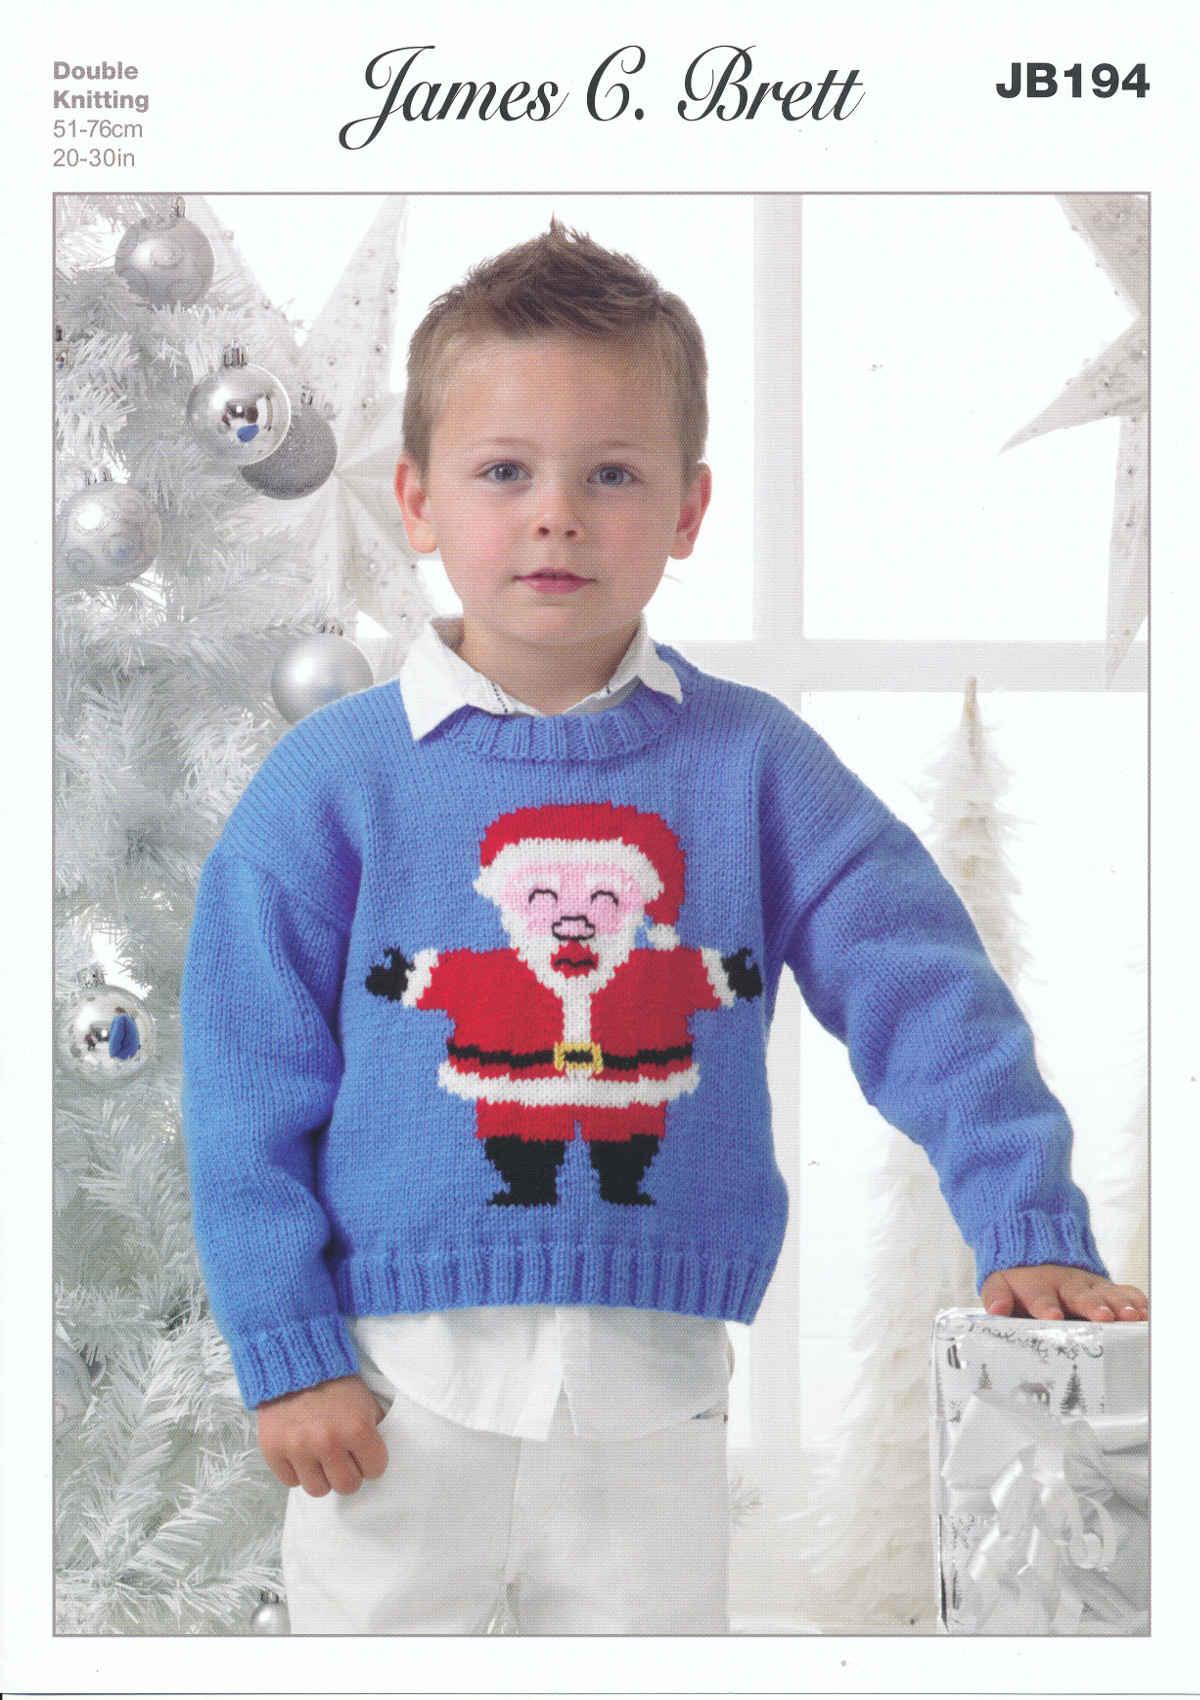 Knitting Patterns Childrens Jumpers : James Brett Double Knitting Pattern Kids Christmas Santa Jumper Sweater JB194...